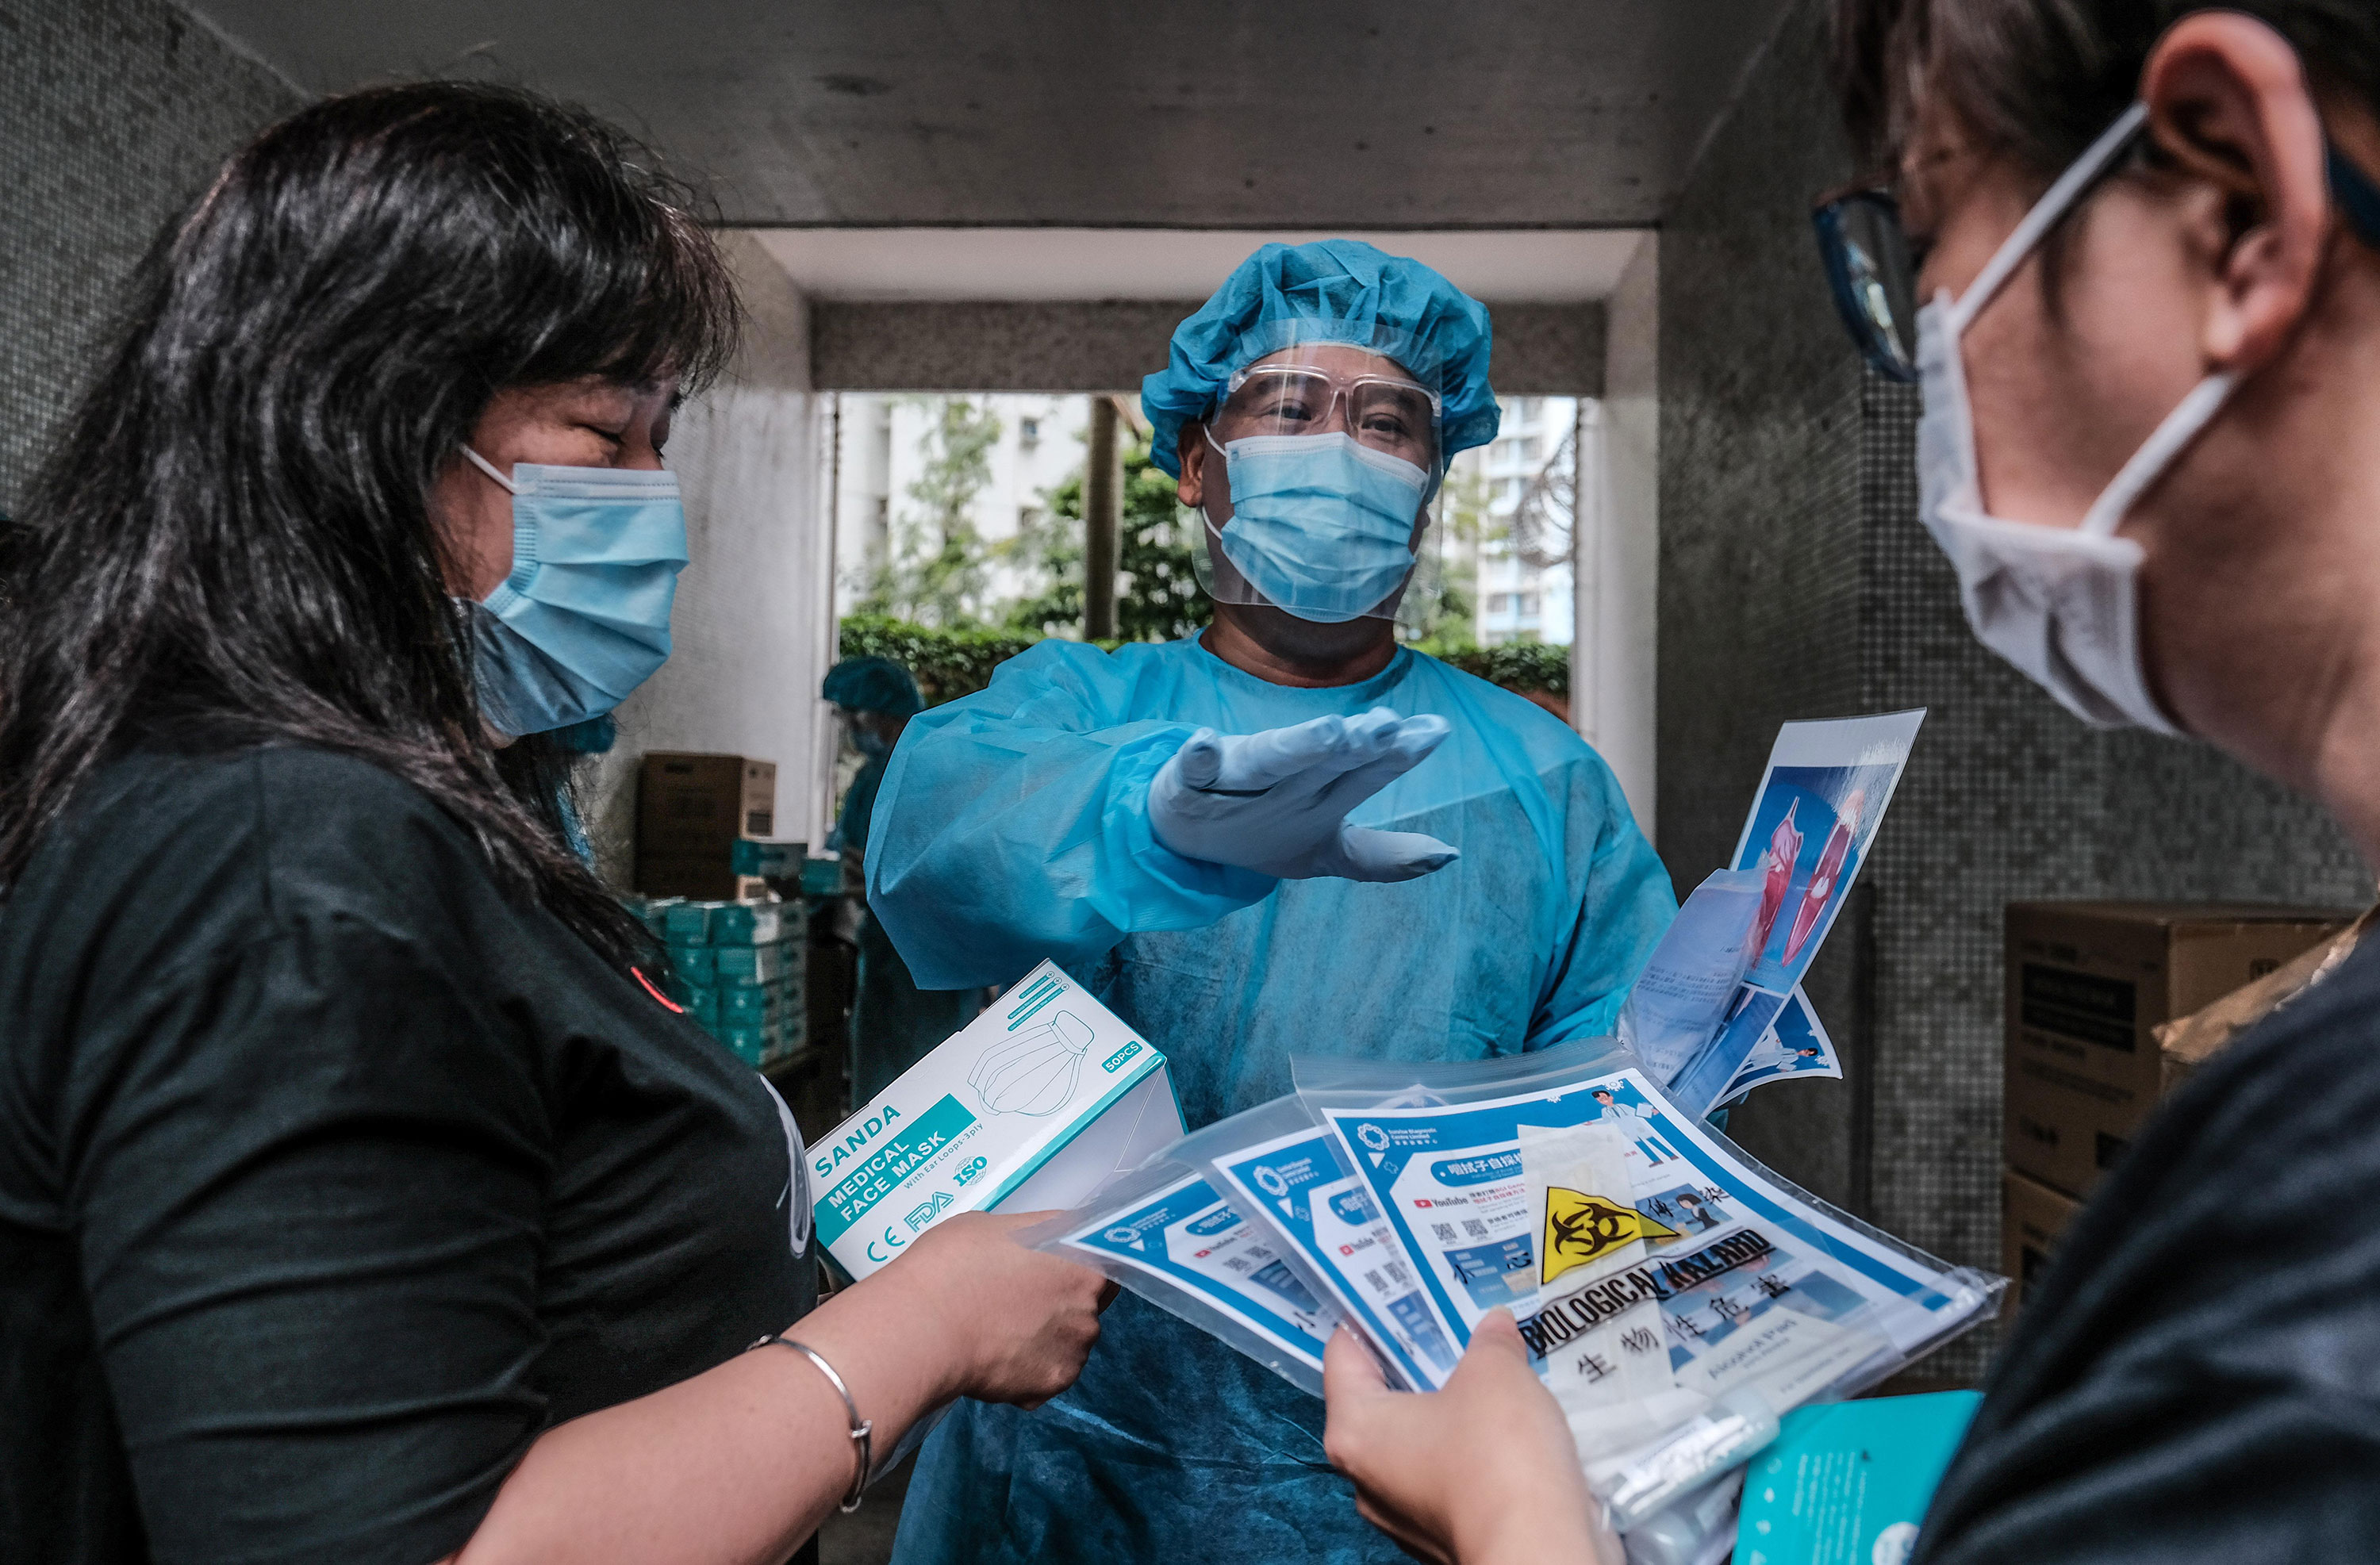 A medical worker hands out Covid-19 test kits to local residents on August 7 in Hong Kong, China.